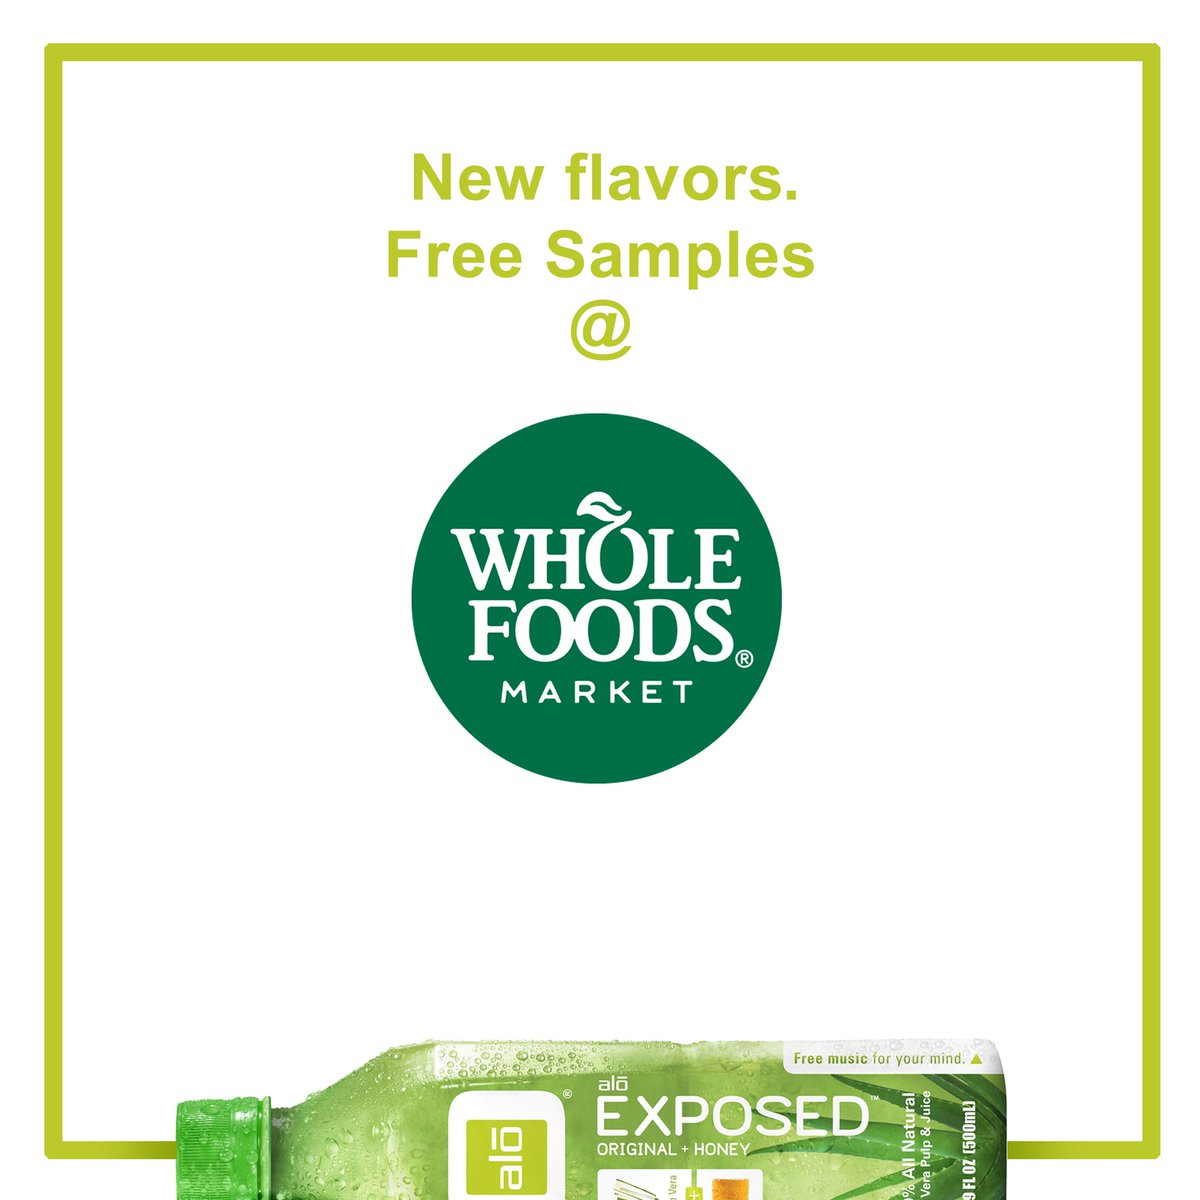 Throughout the month of August, most Whole Foods Market stores will have #ALOdrink on demos! Try our drinks... for #free. #instore <br>http://pic.twitter.com/xJ6EiFOPlU